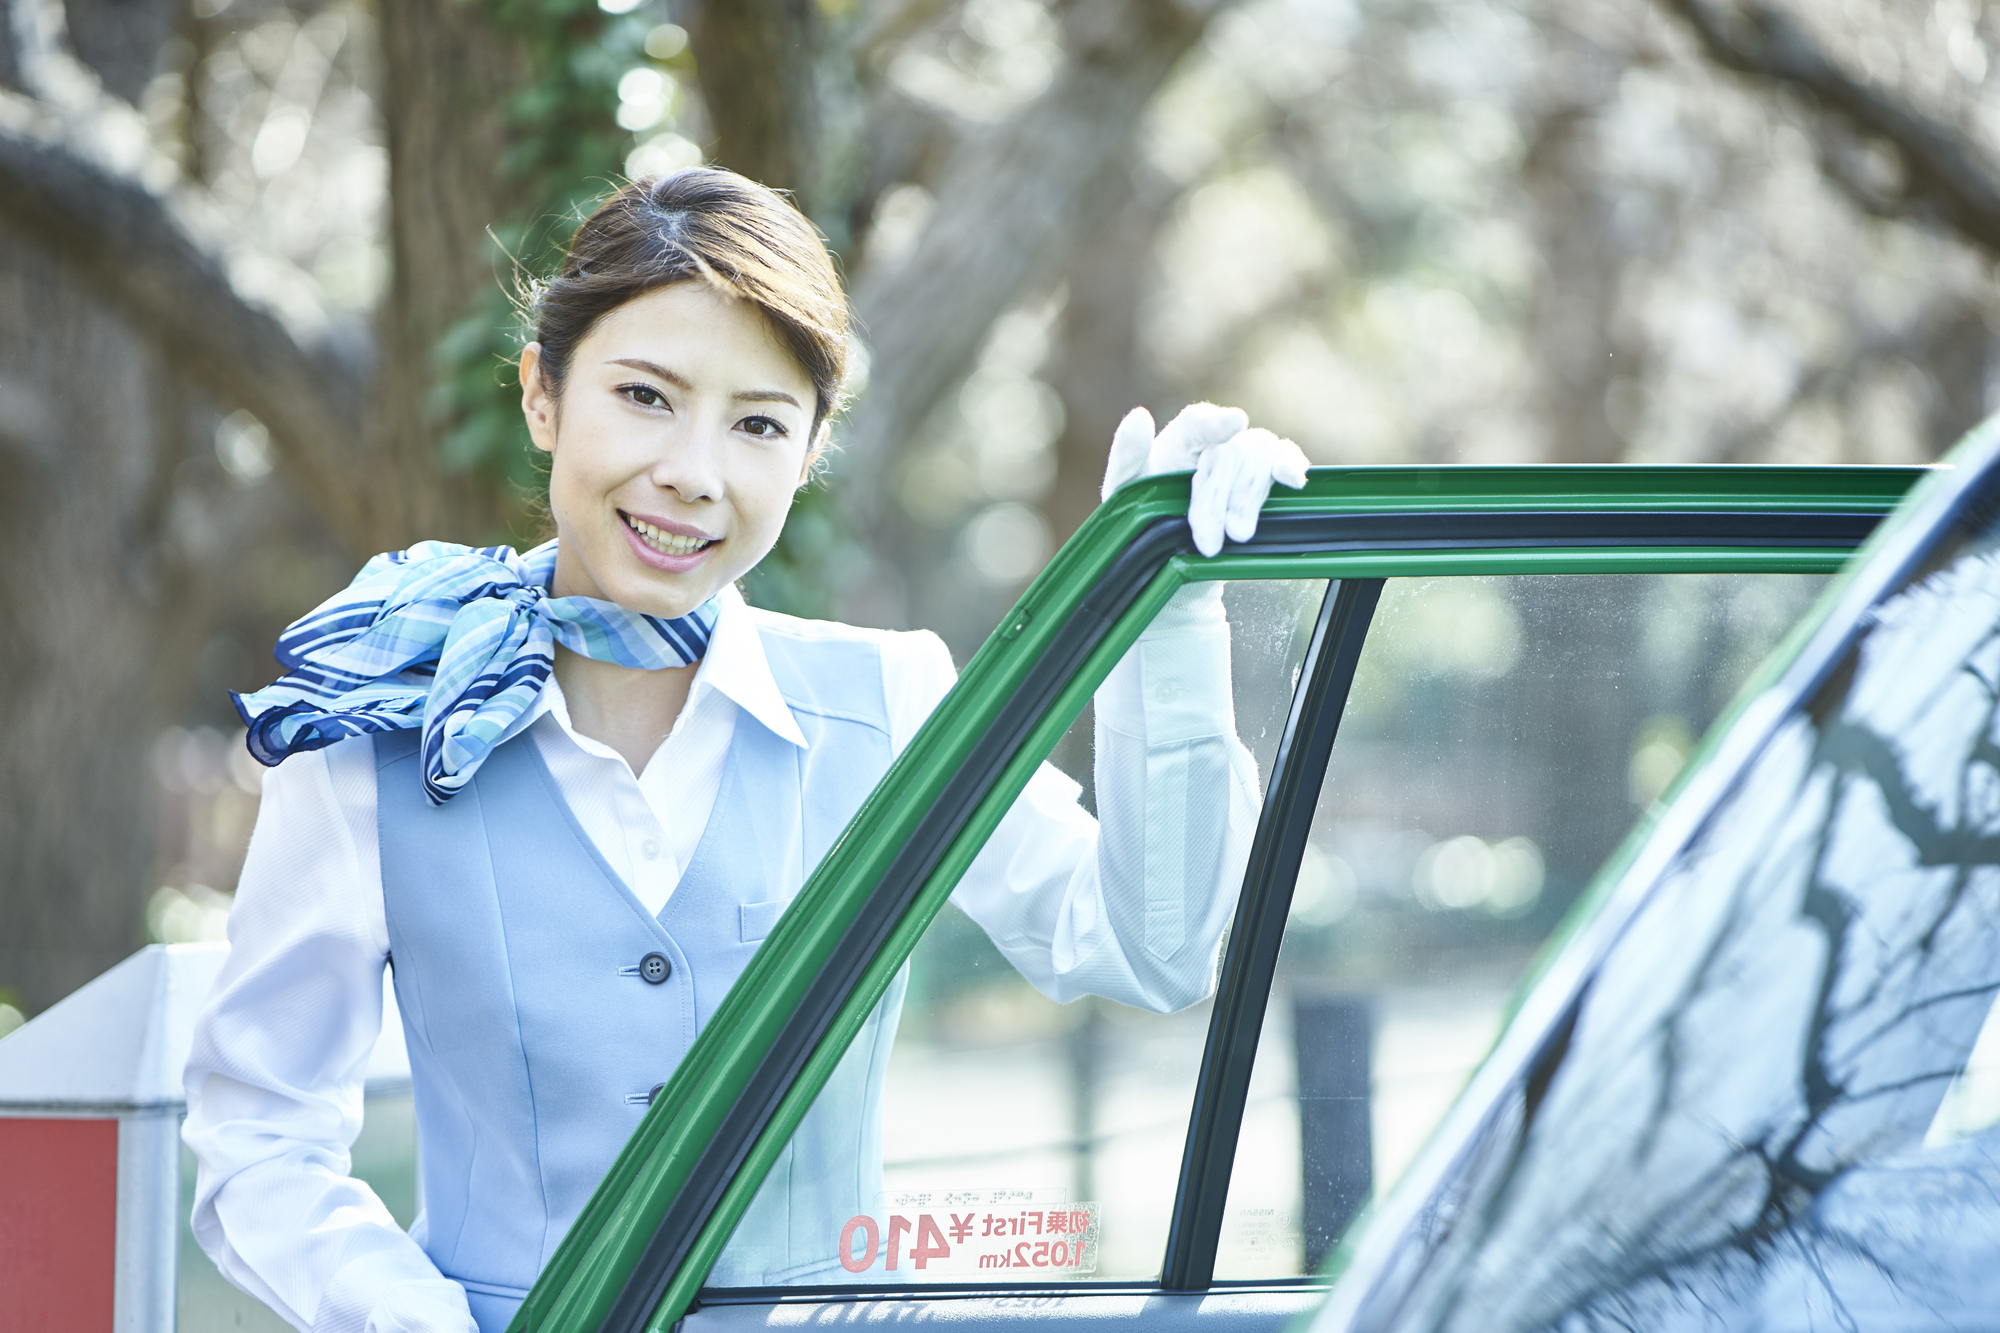 "<span class=""title"">女性のタクシー運転手が増えている理由とは?</span>"